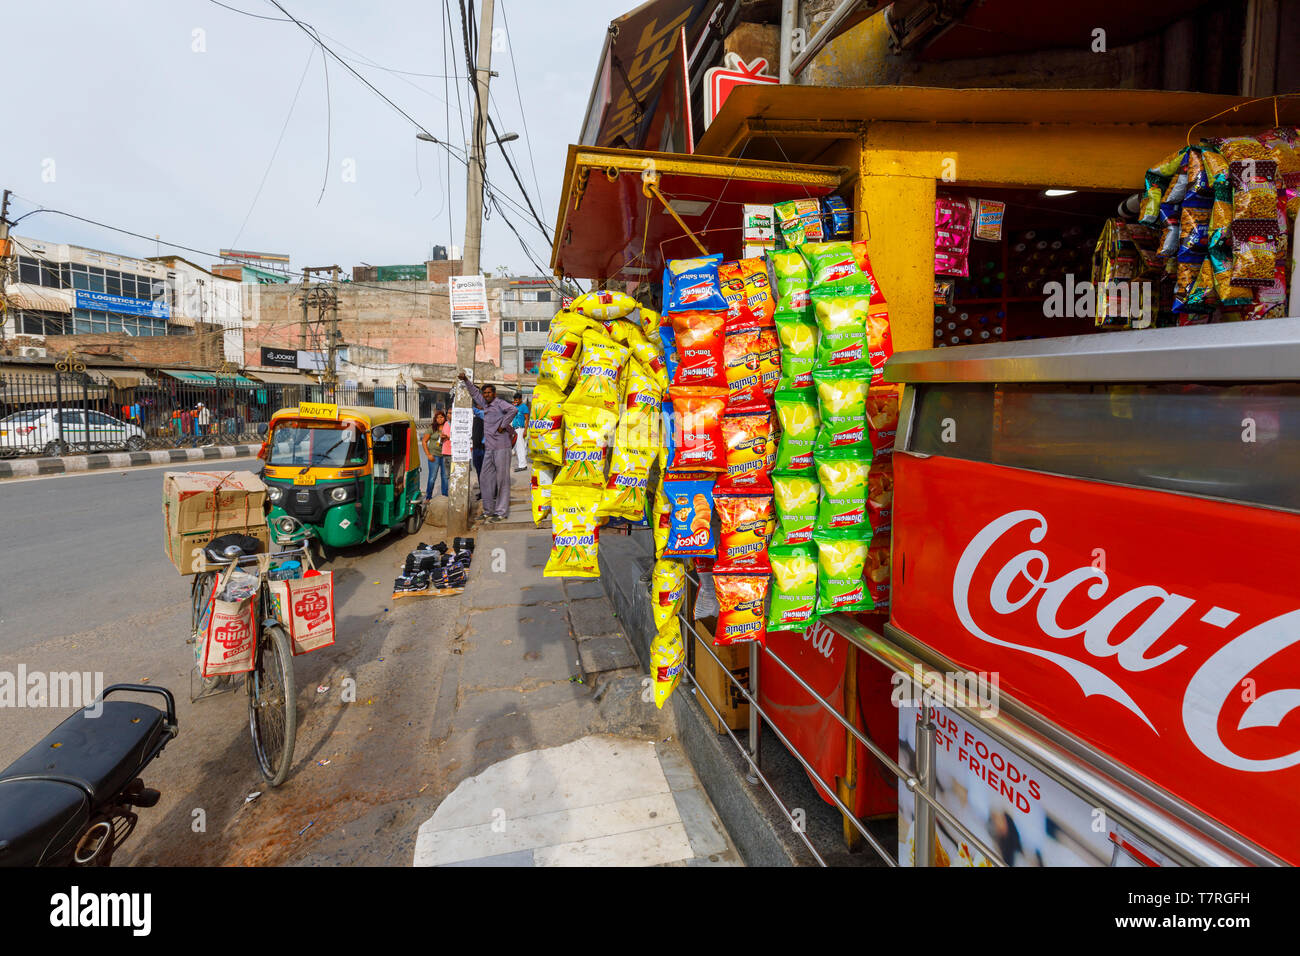 Street scene, Mahipalpur district, a suburb near Delhi Airport, New Delhi, India: local shop selling snacks with a display of colourful crisp packets - Stock Image